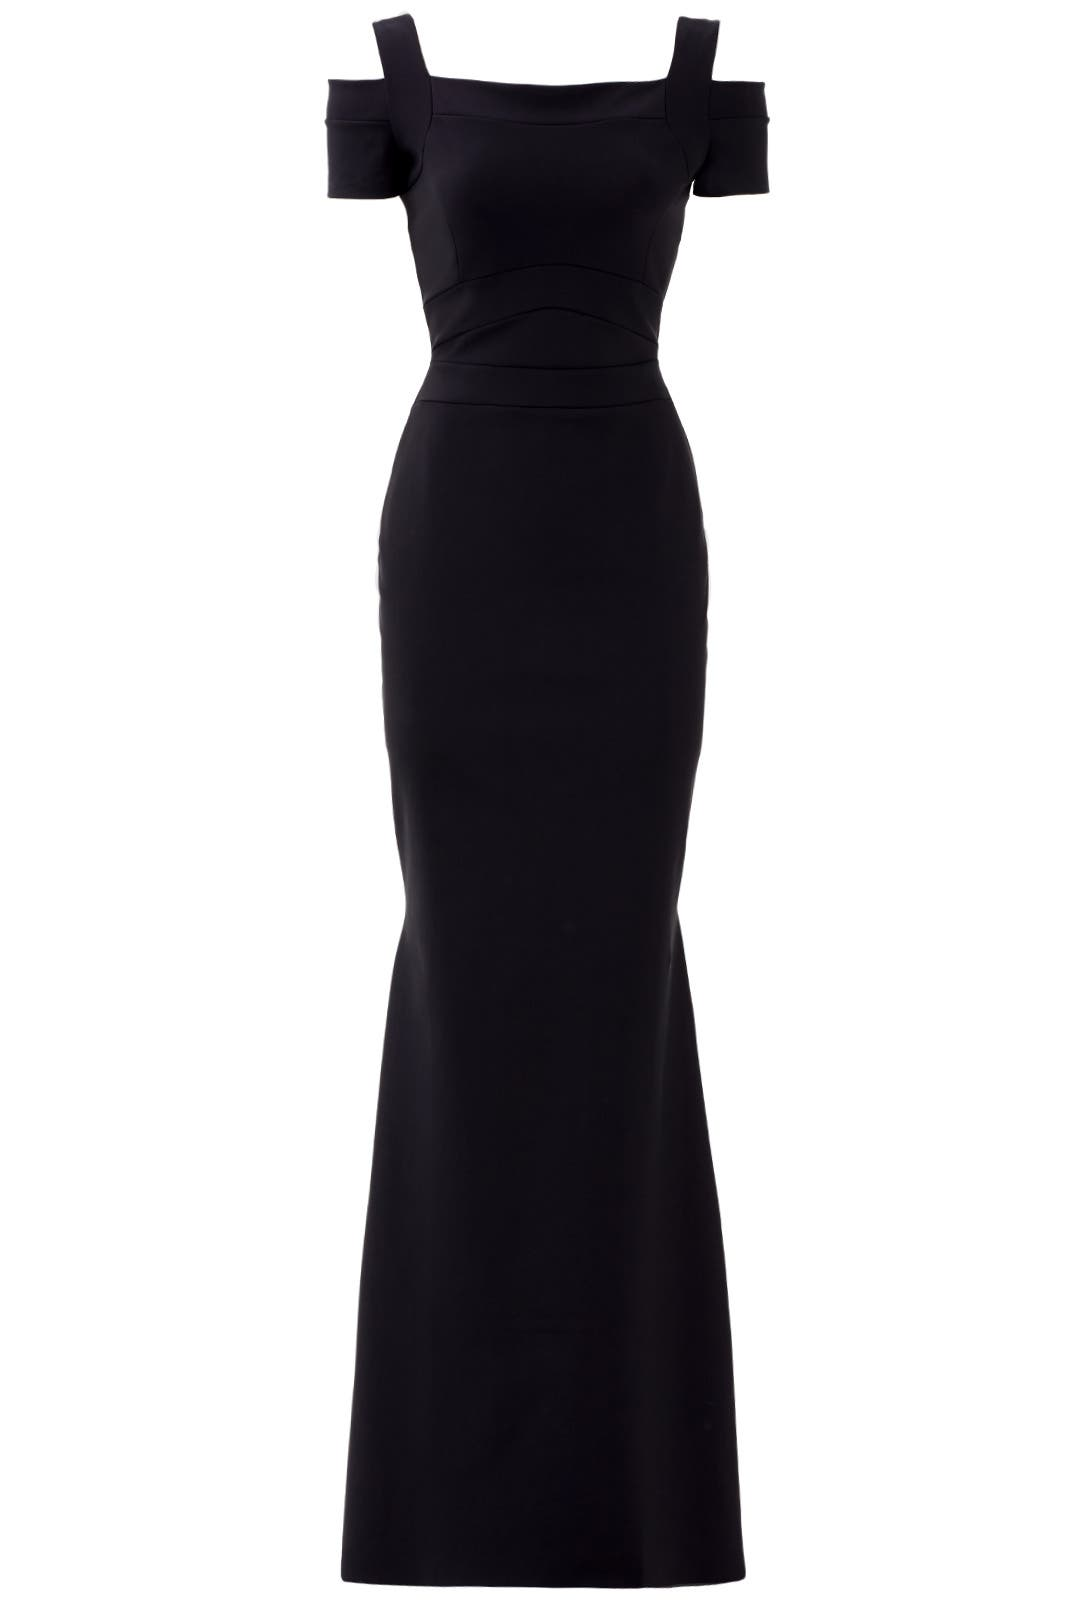 Black Jenna Gown by La Petite Robe di Chiara Boni for $130 - $150 ...